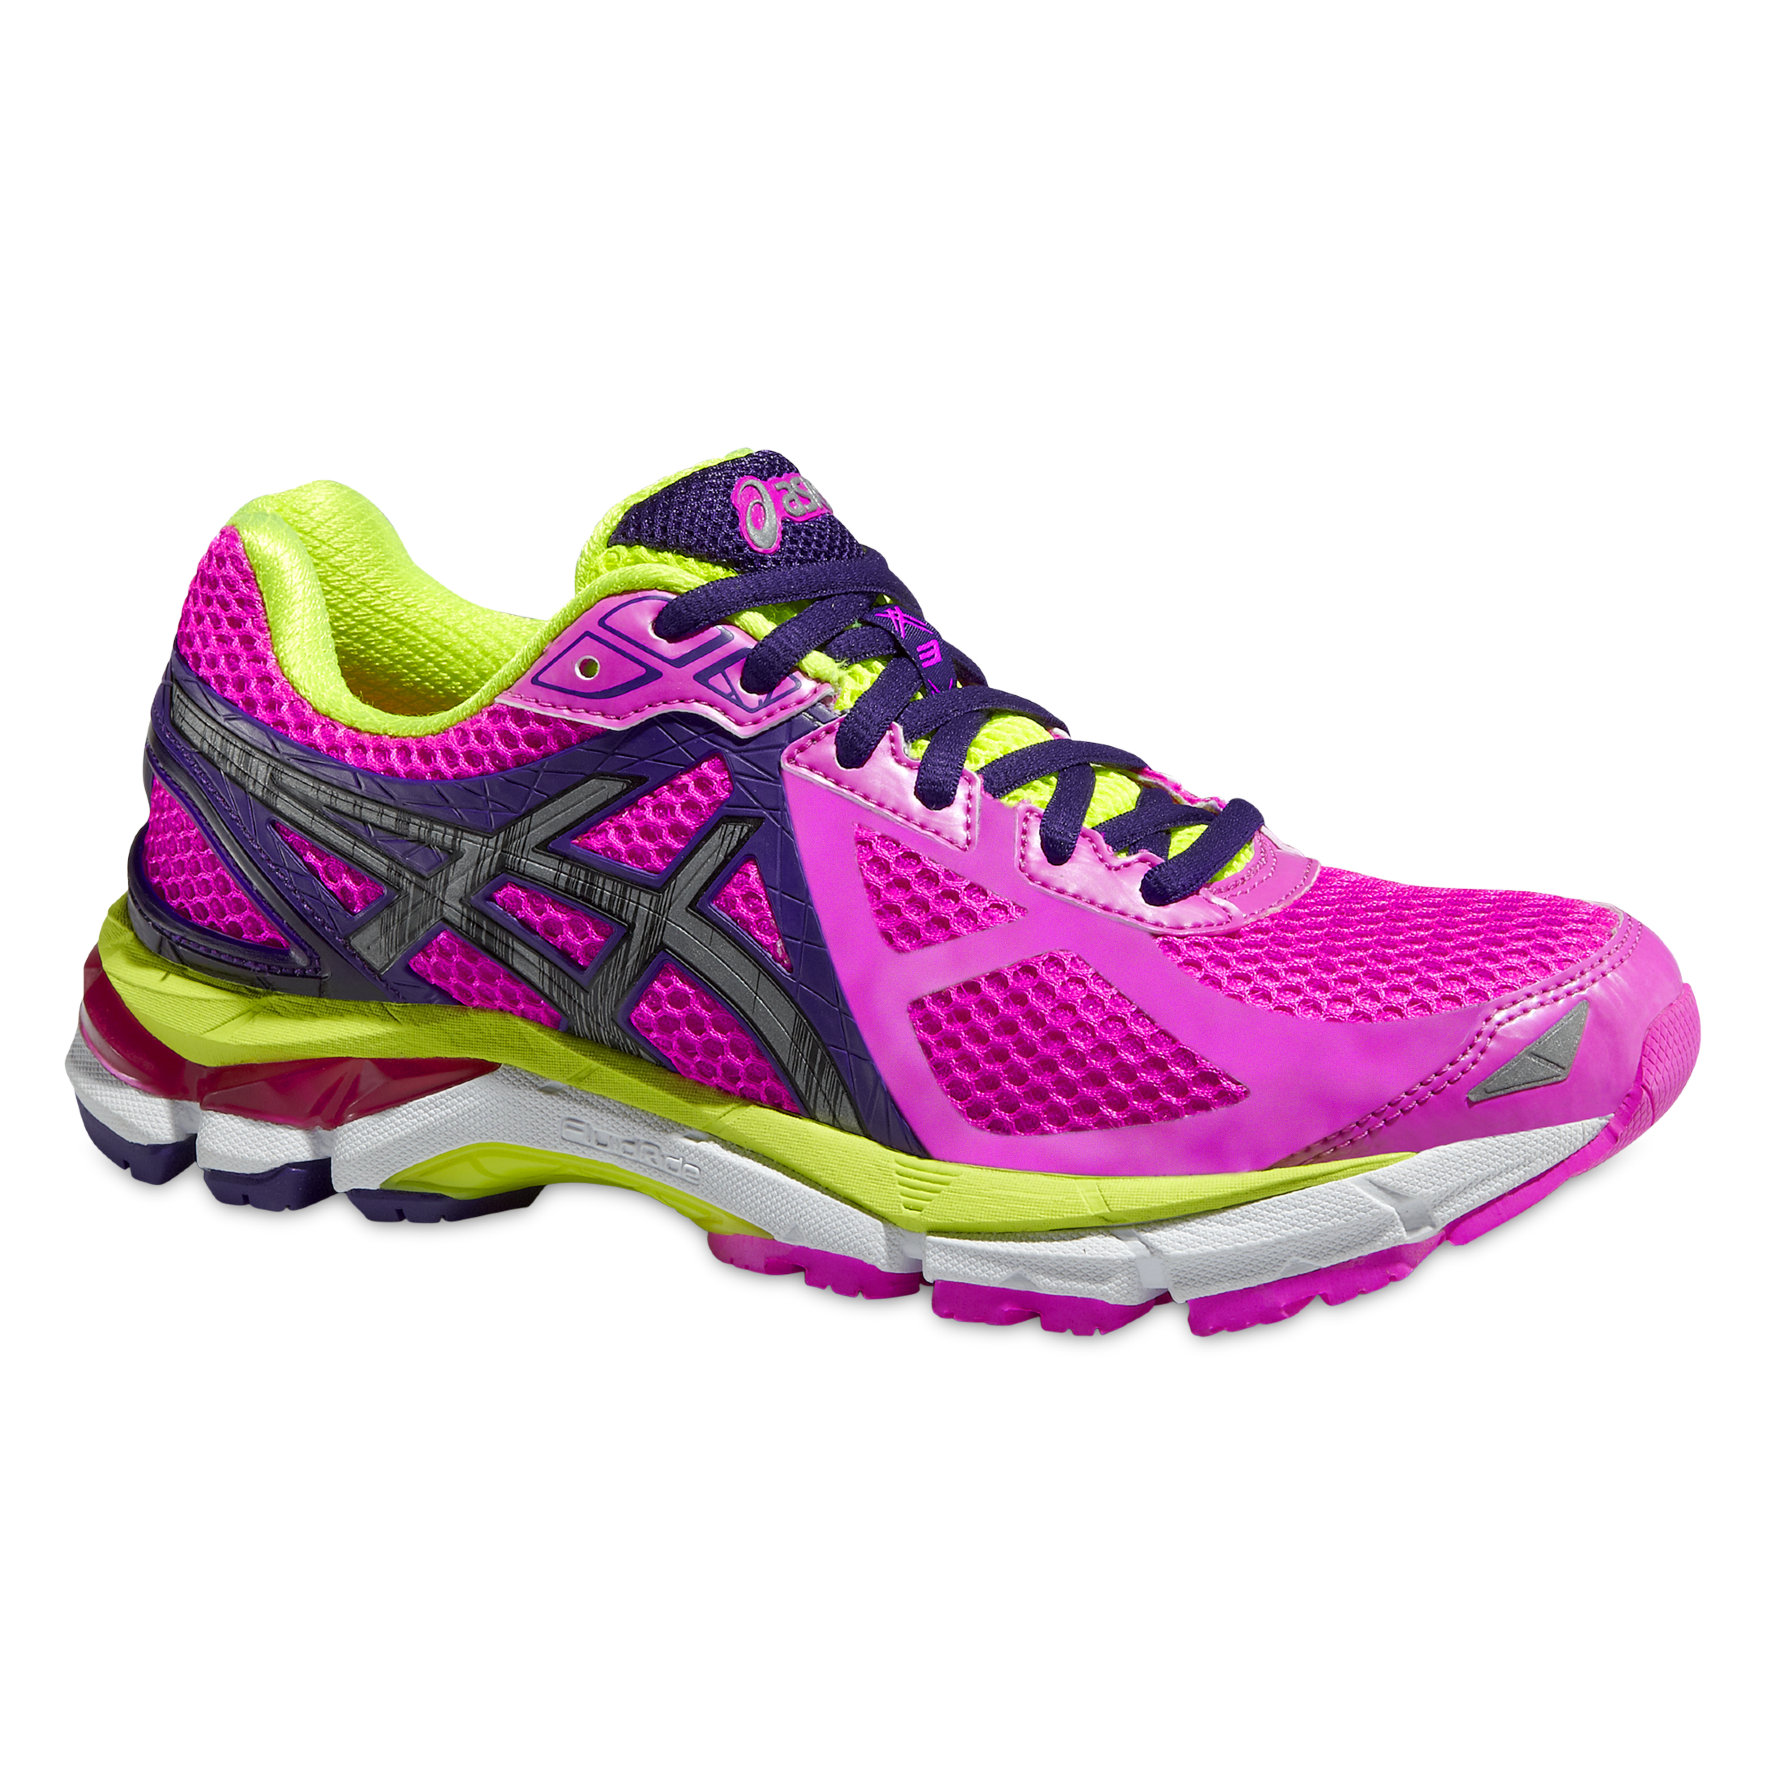 Asics Lady GT 2000 3 LS in Pink/Gelb